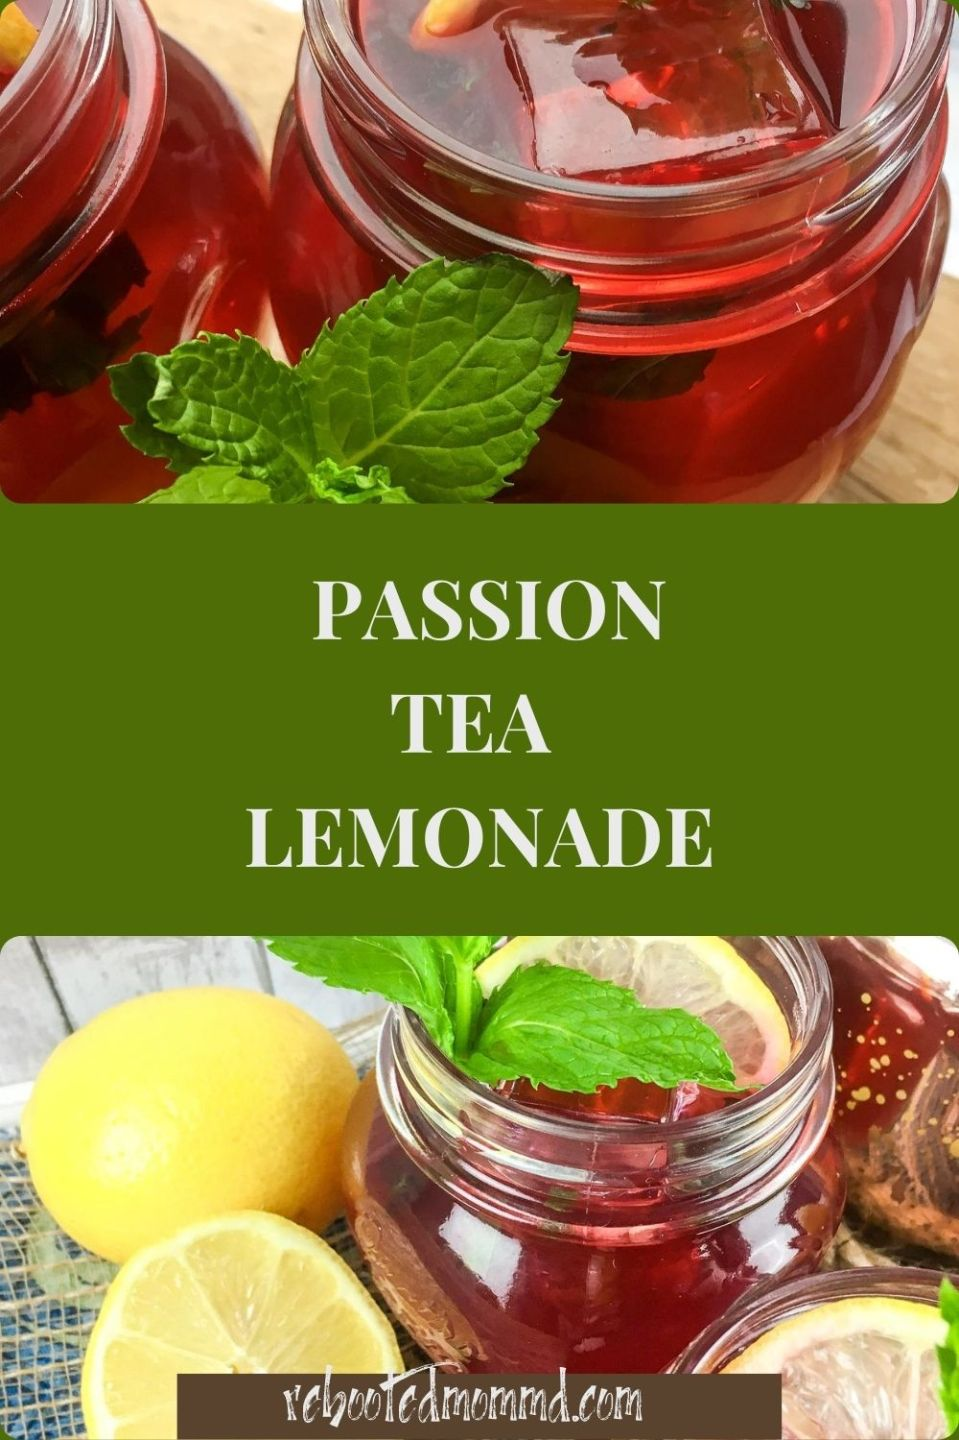 Celebrate Lemonade Day with Passion Tea Lemonade!